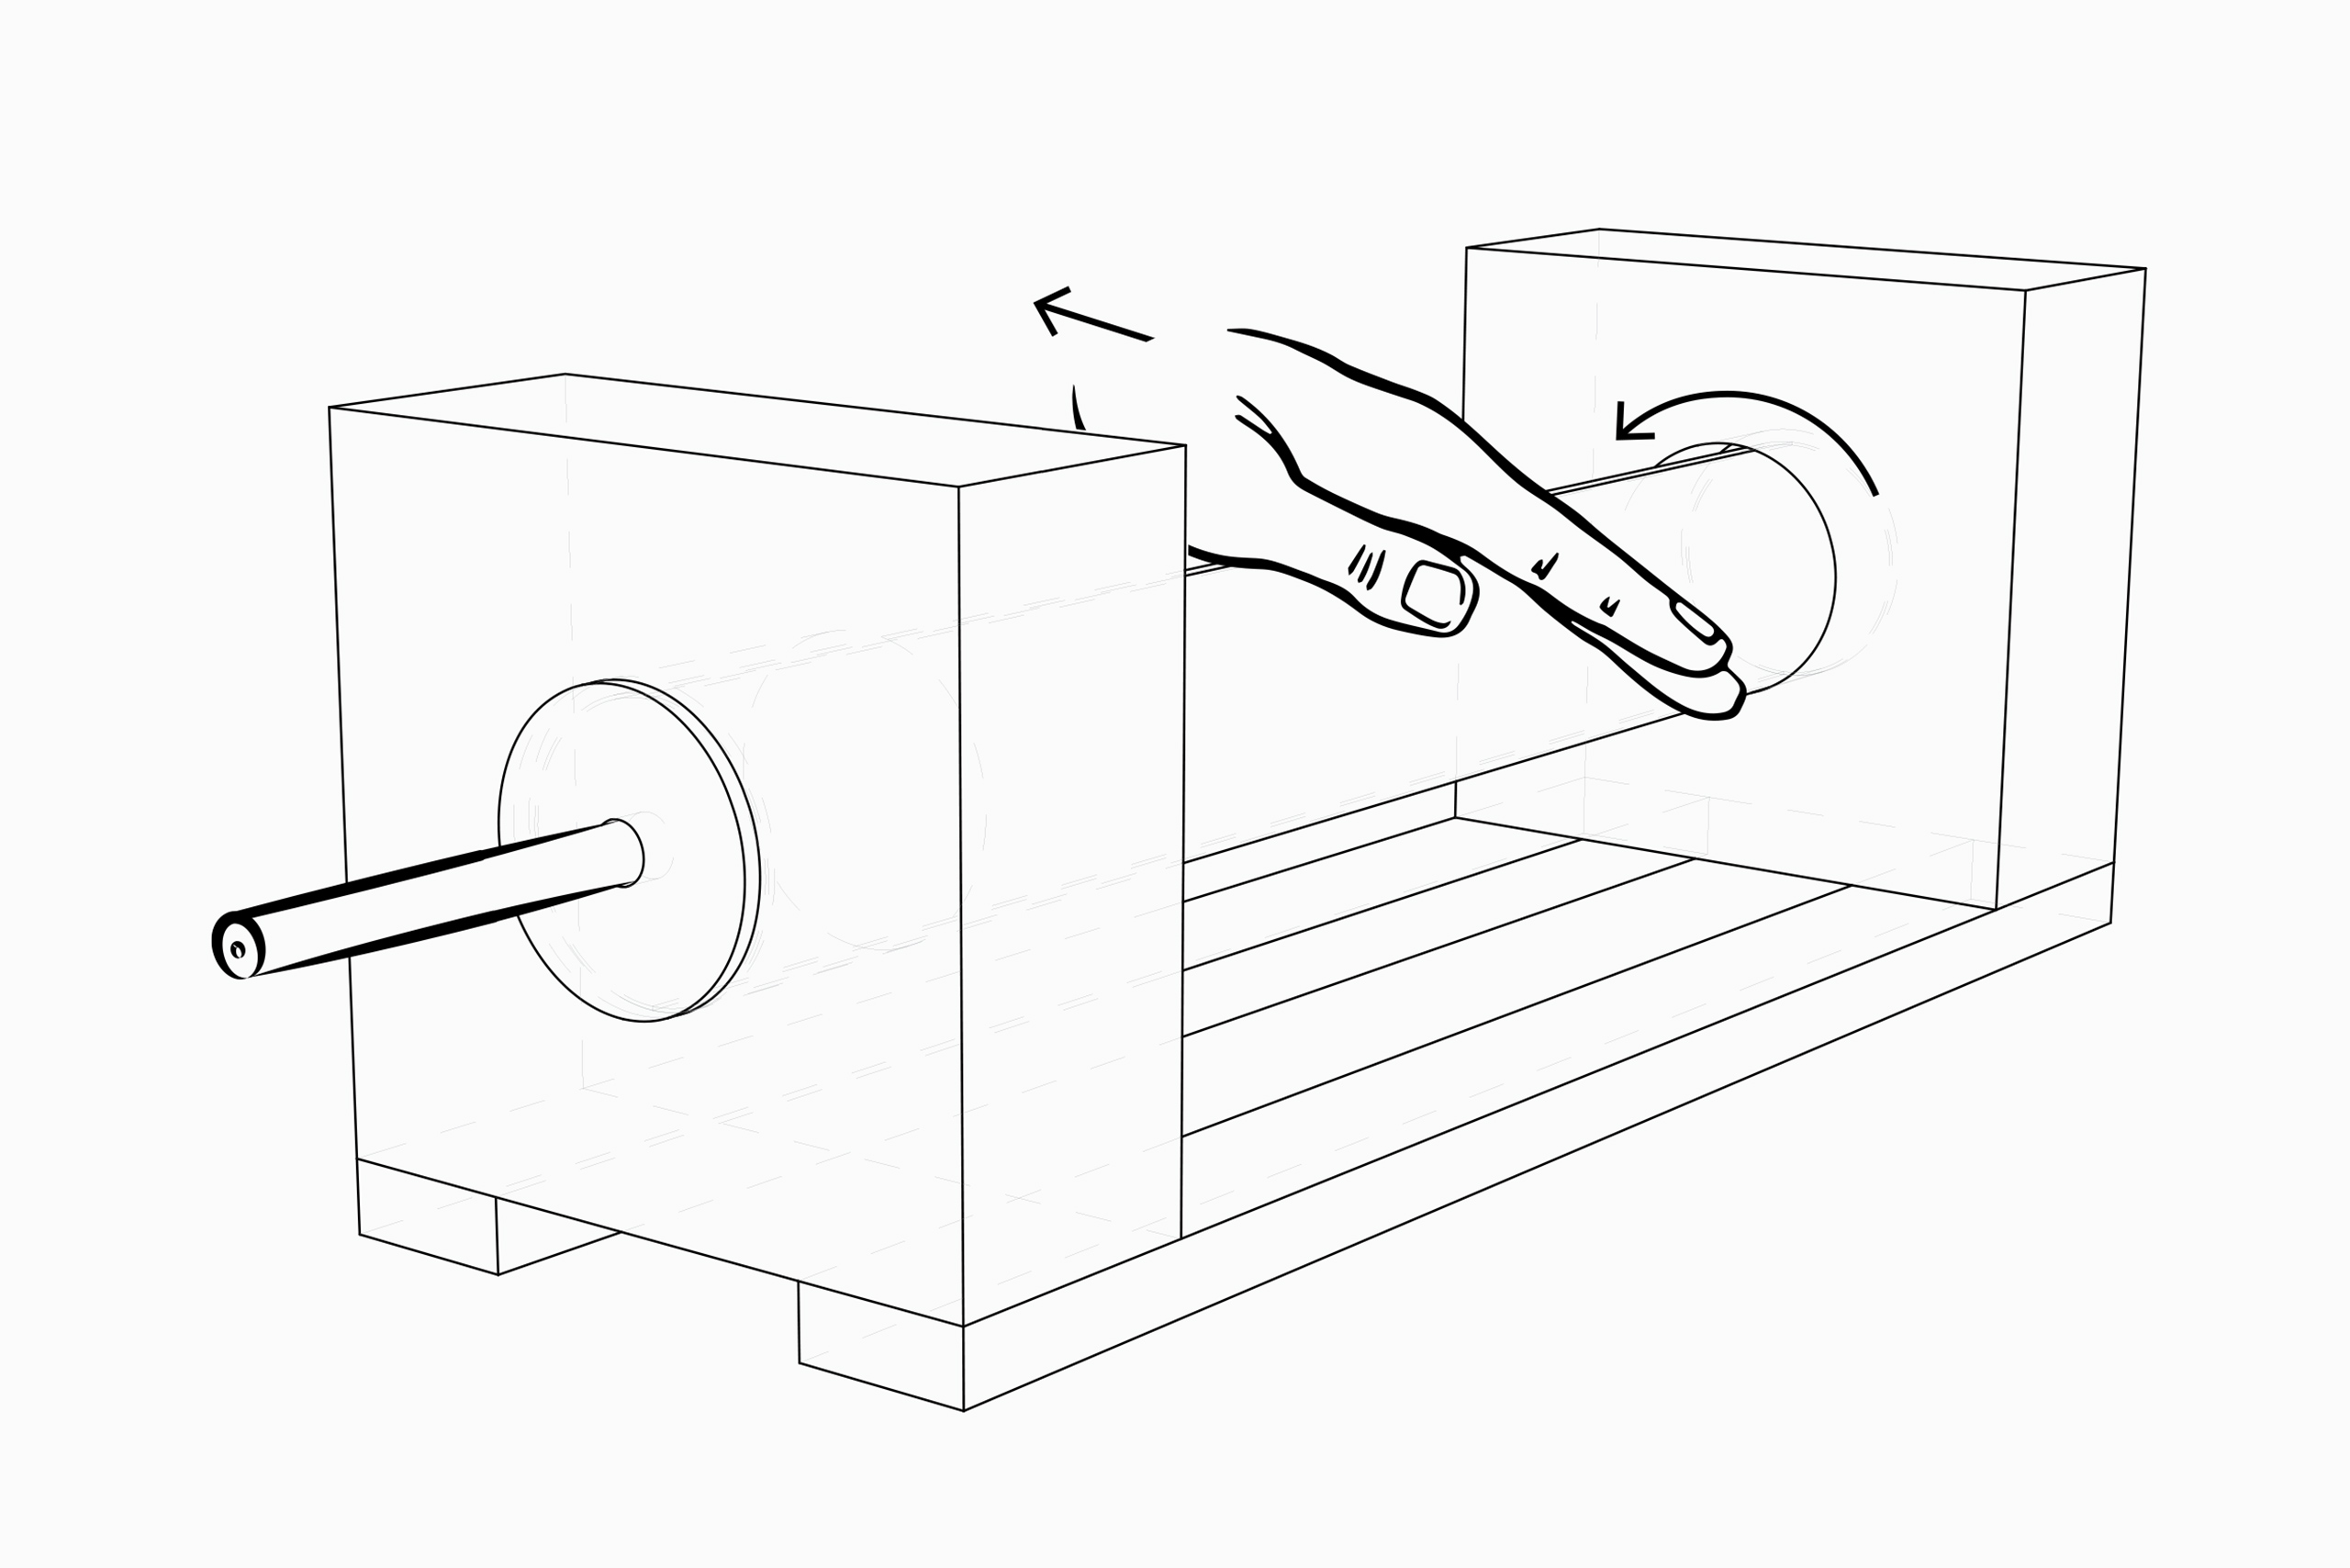 Anspitzer – Pencil Sharpener for Peoiple with Movement Disorders – Henrike Joana Cohrs | Drawing: Henrike Joana Cohrs